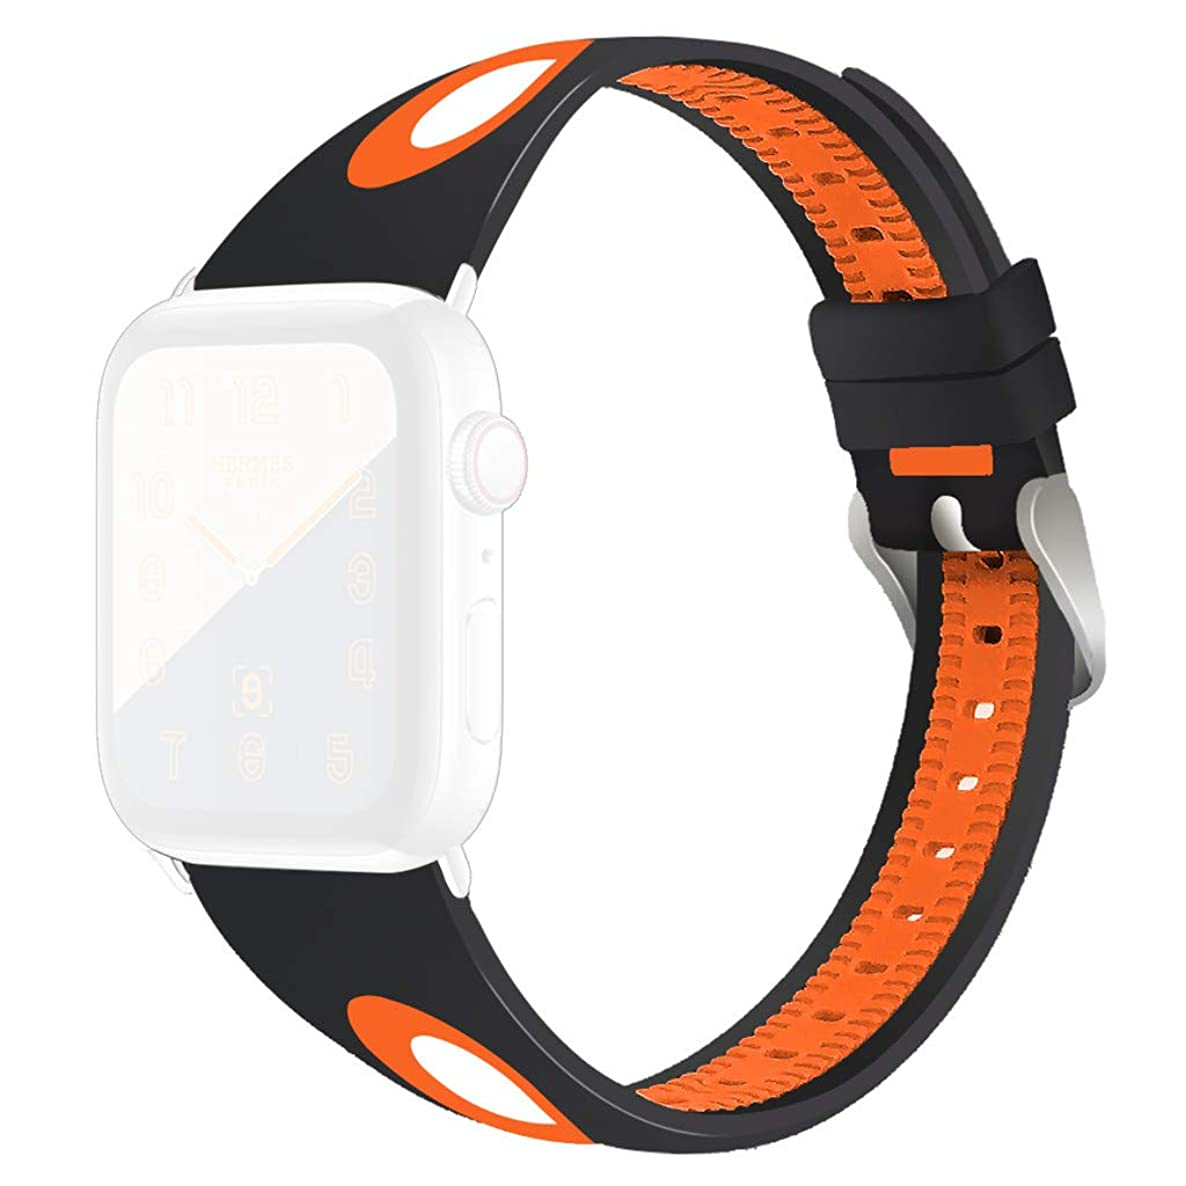 Nargar Bands Compatible for Apple Watch Series 4/3/2/1 42mm 44mm Silicone Sport Replacement Breathable Sport Bands Durable Lightweight Multicolor Fitness Classic Straps Bracelet (Orange)